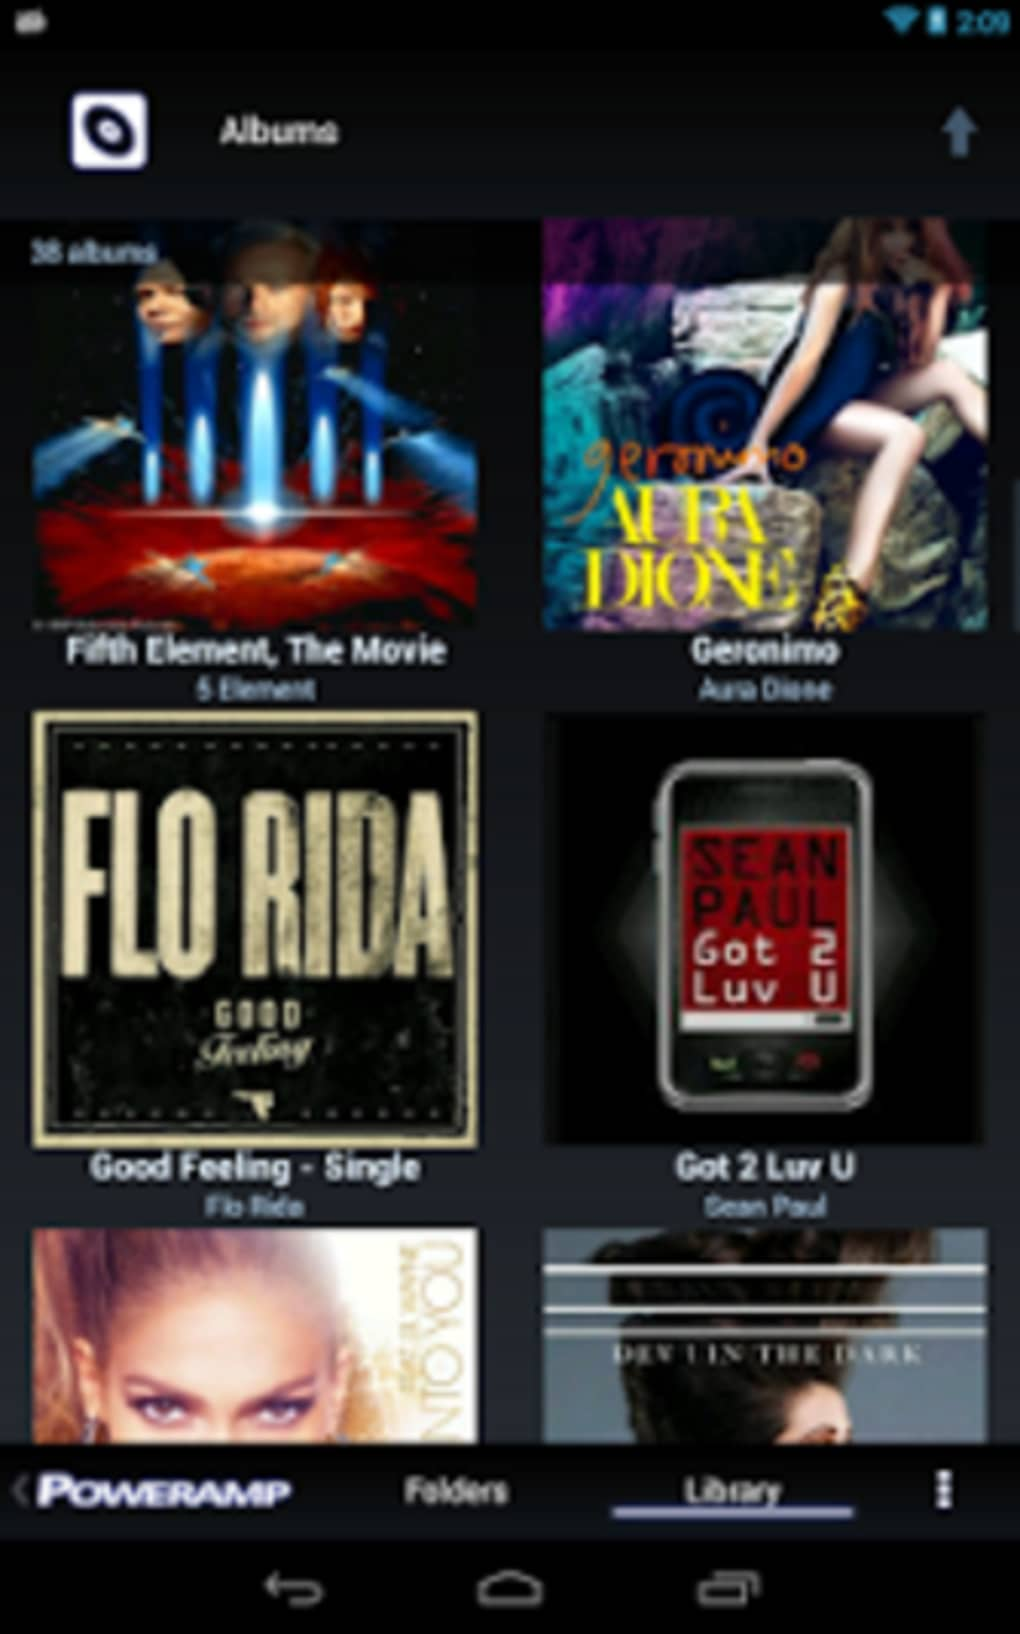 PowerAMP Full Version Unlocker for Android - Download